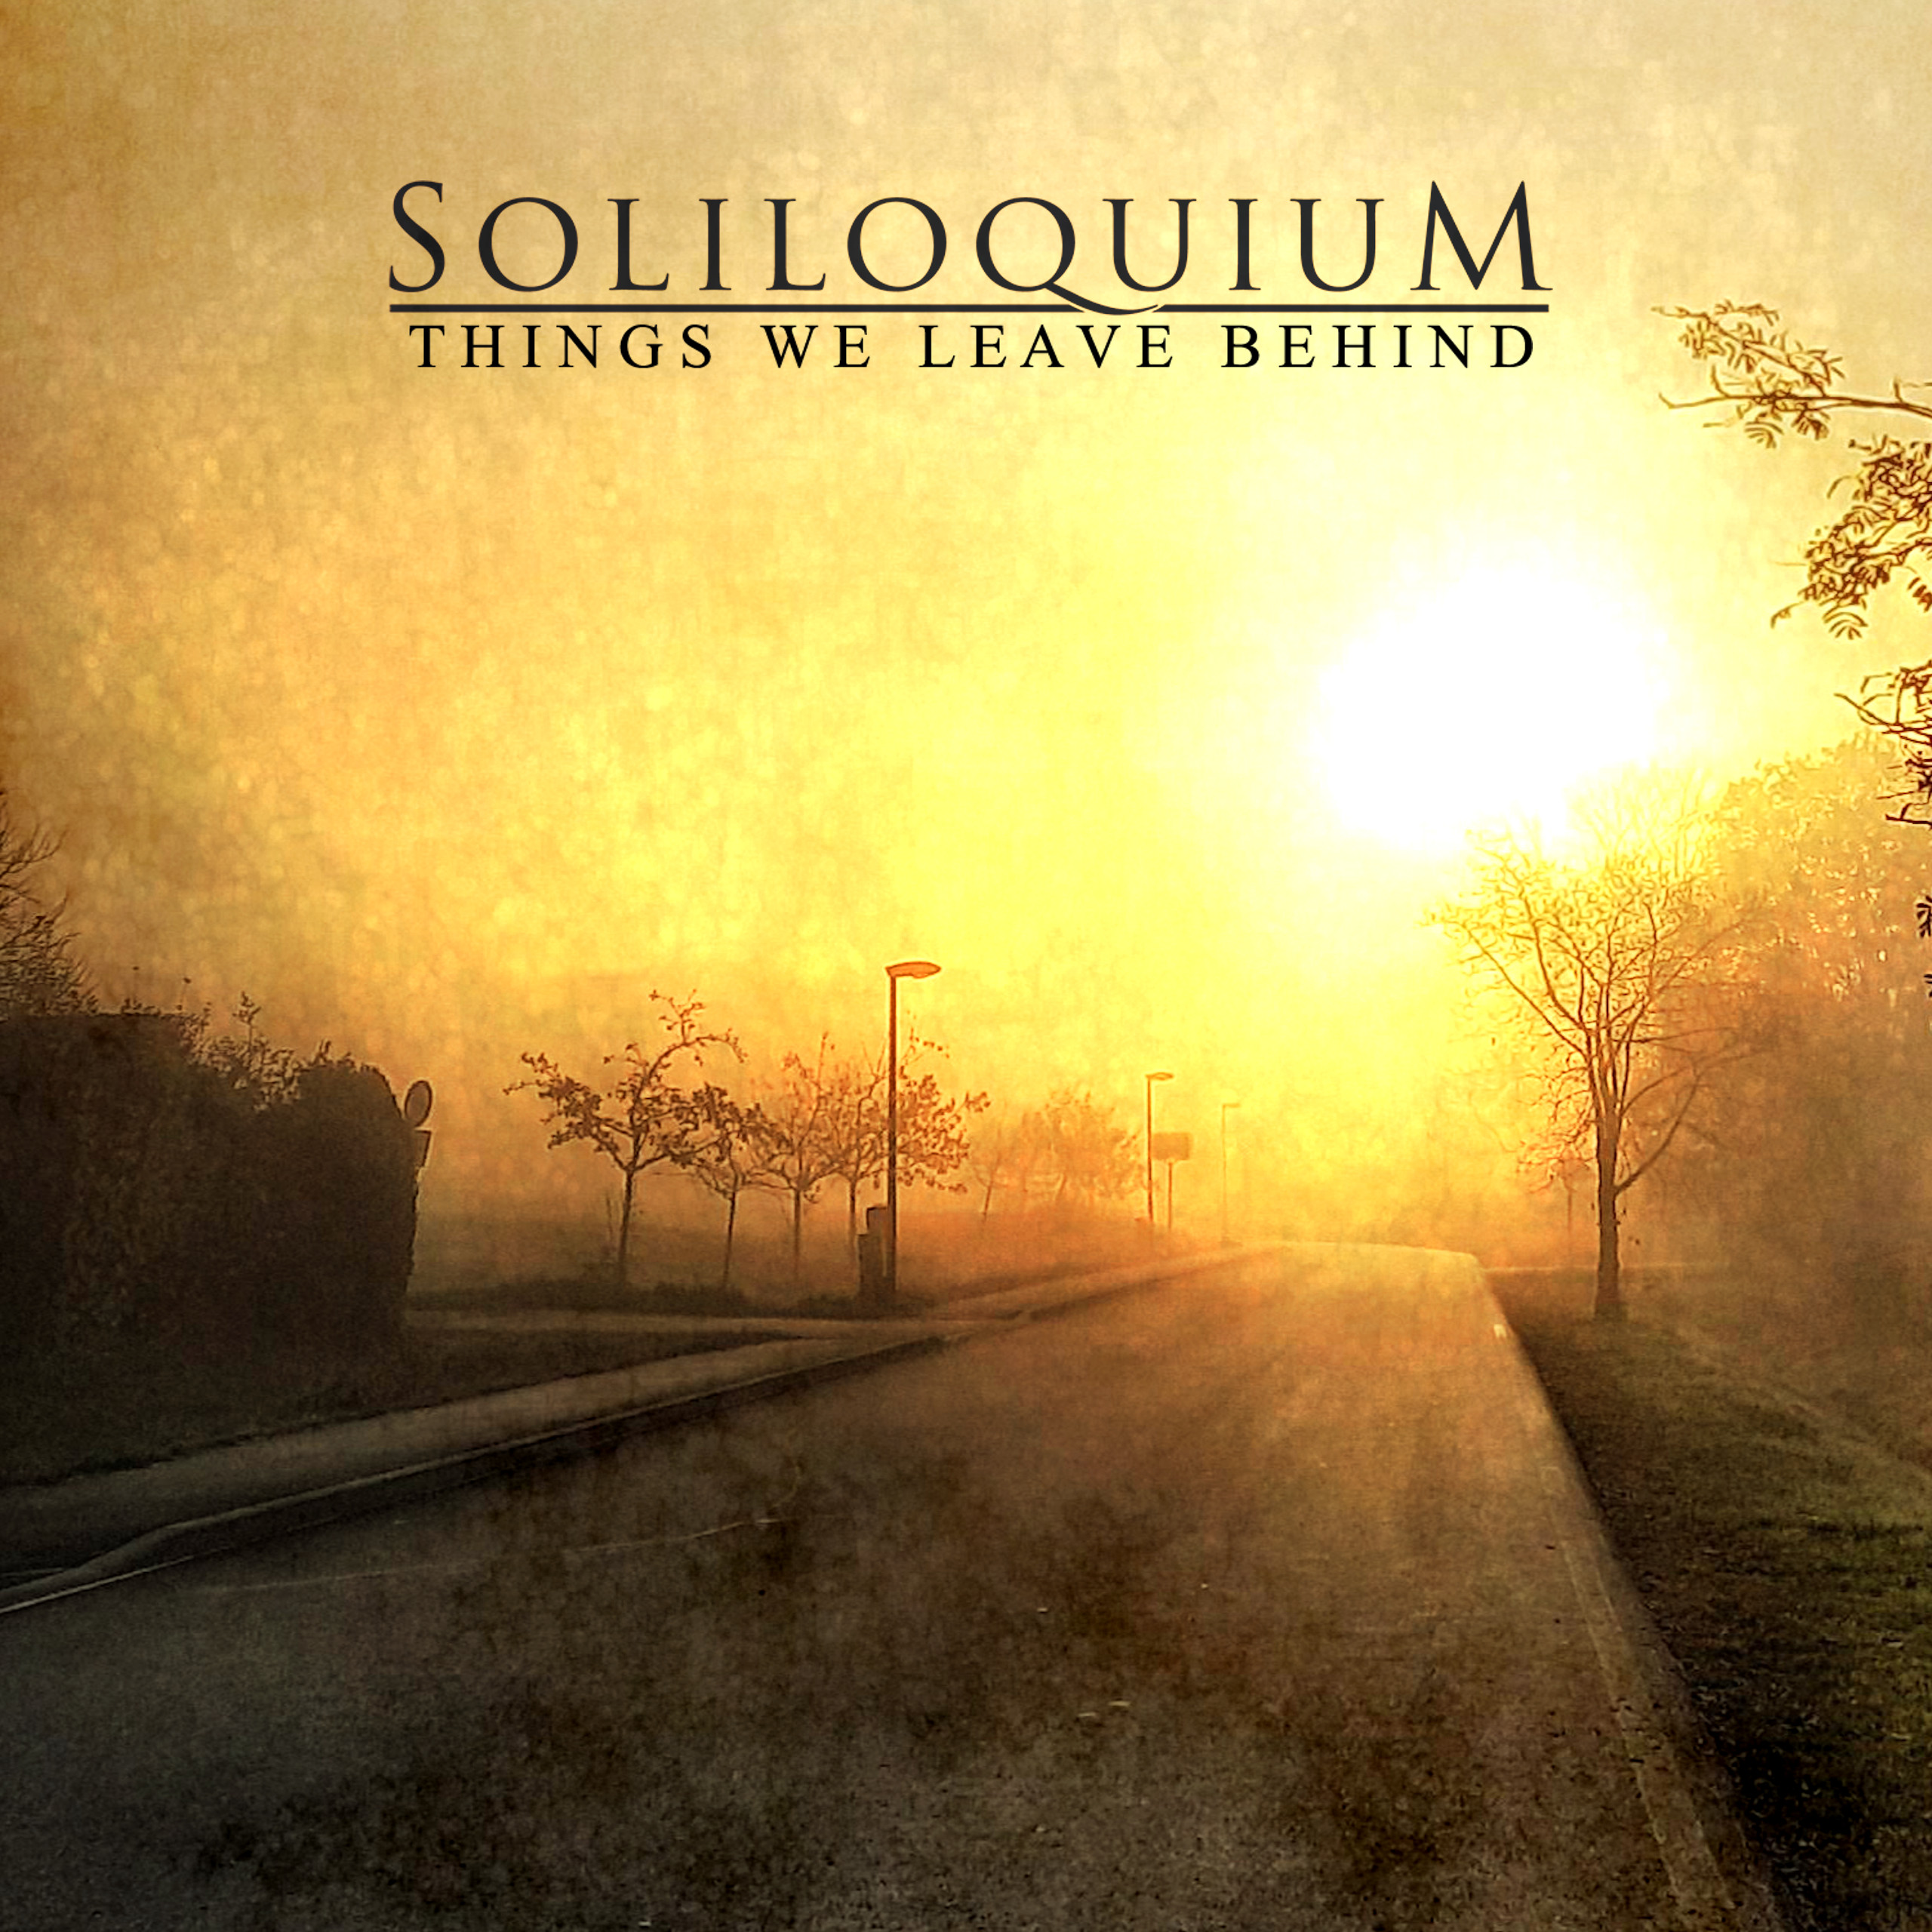 Soliloquium - Things We Leave Behind